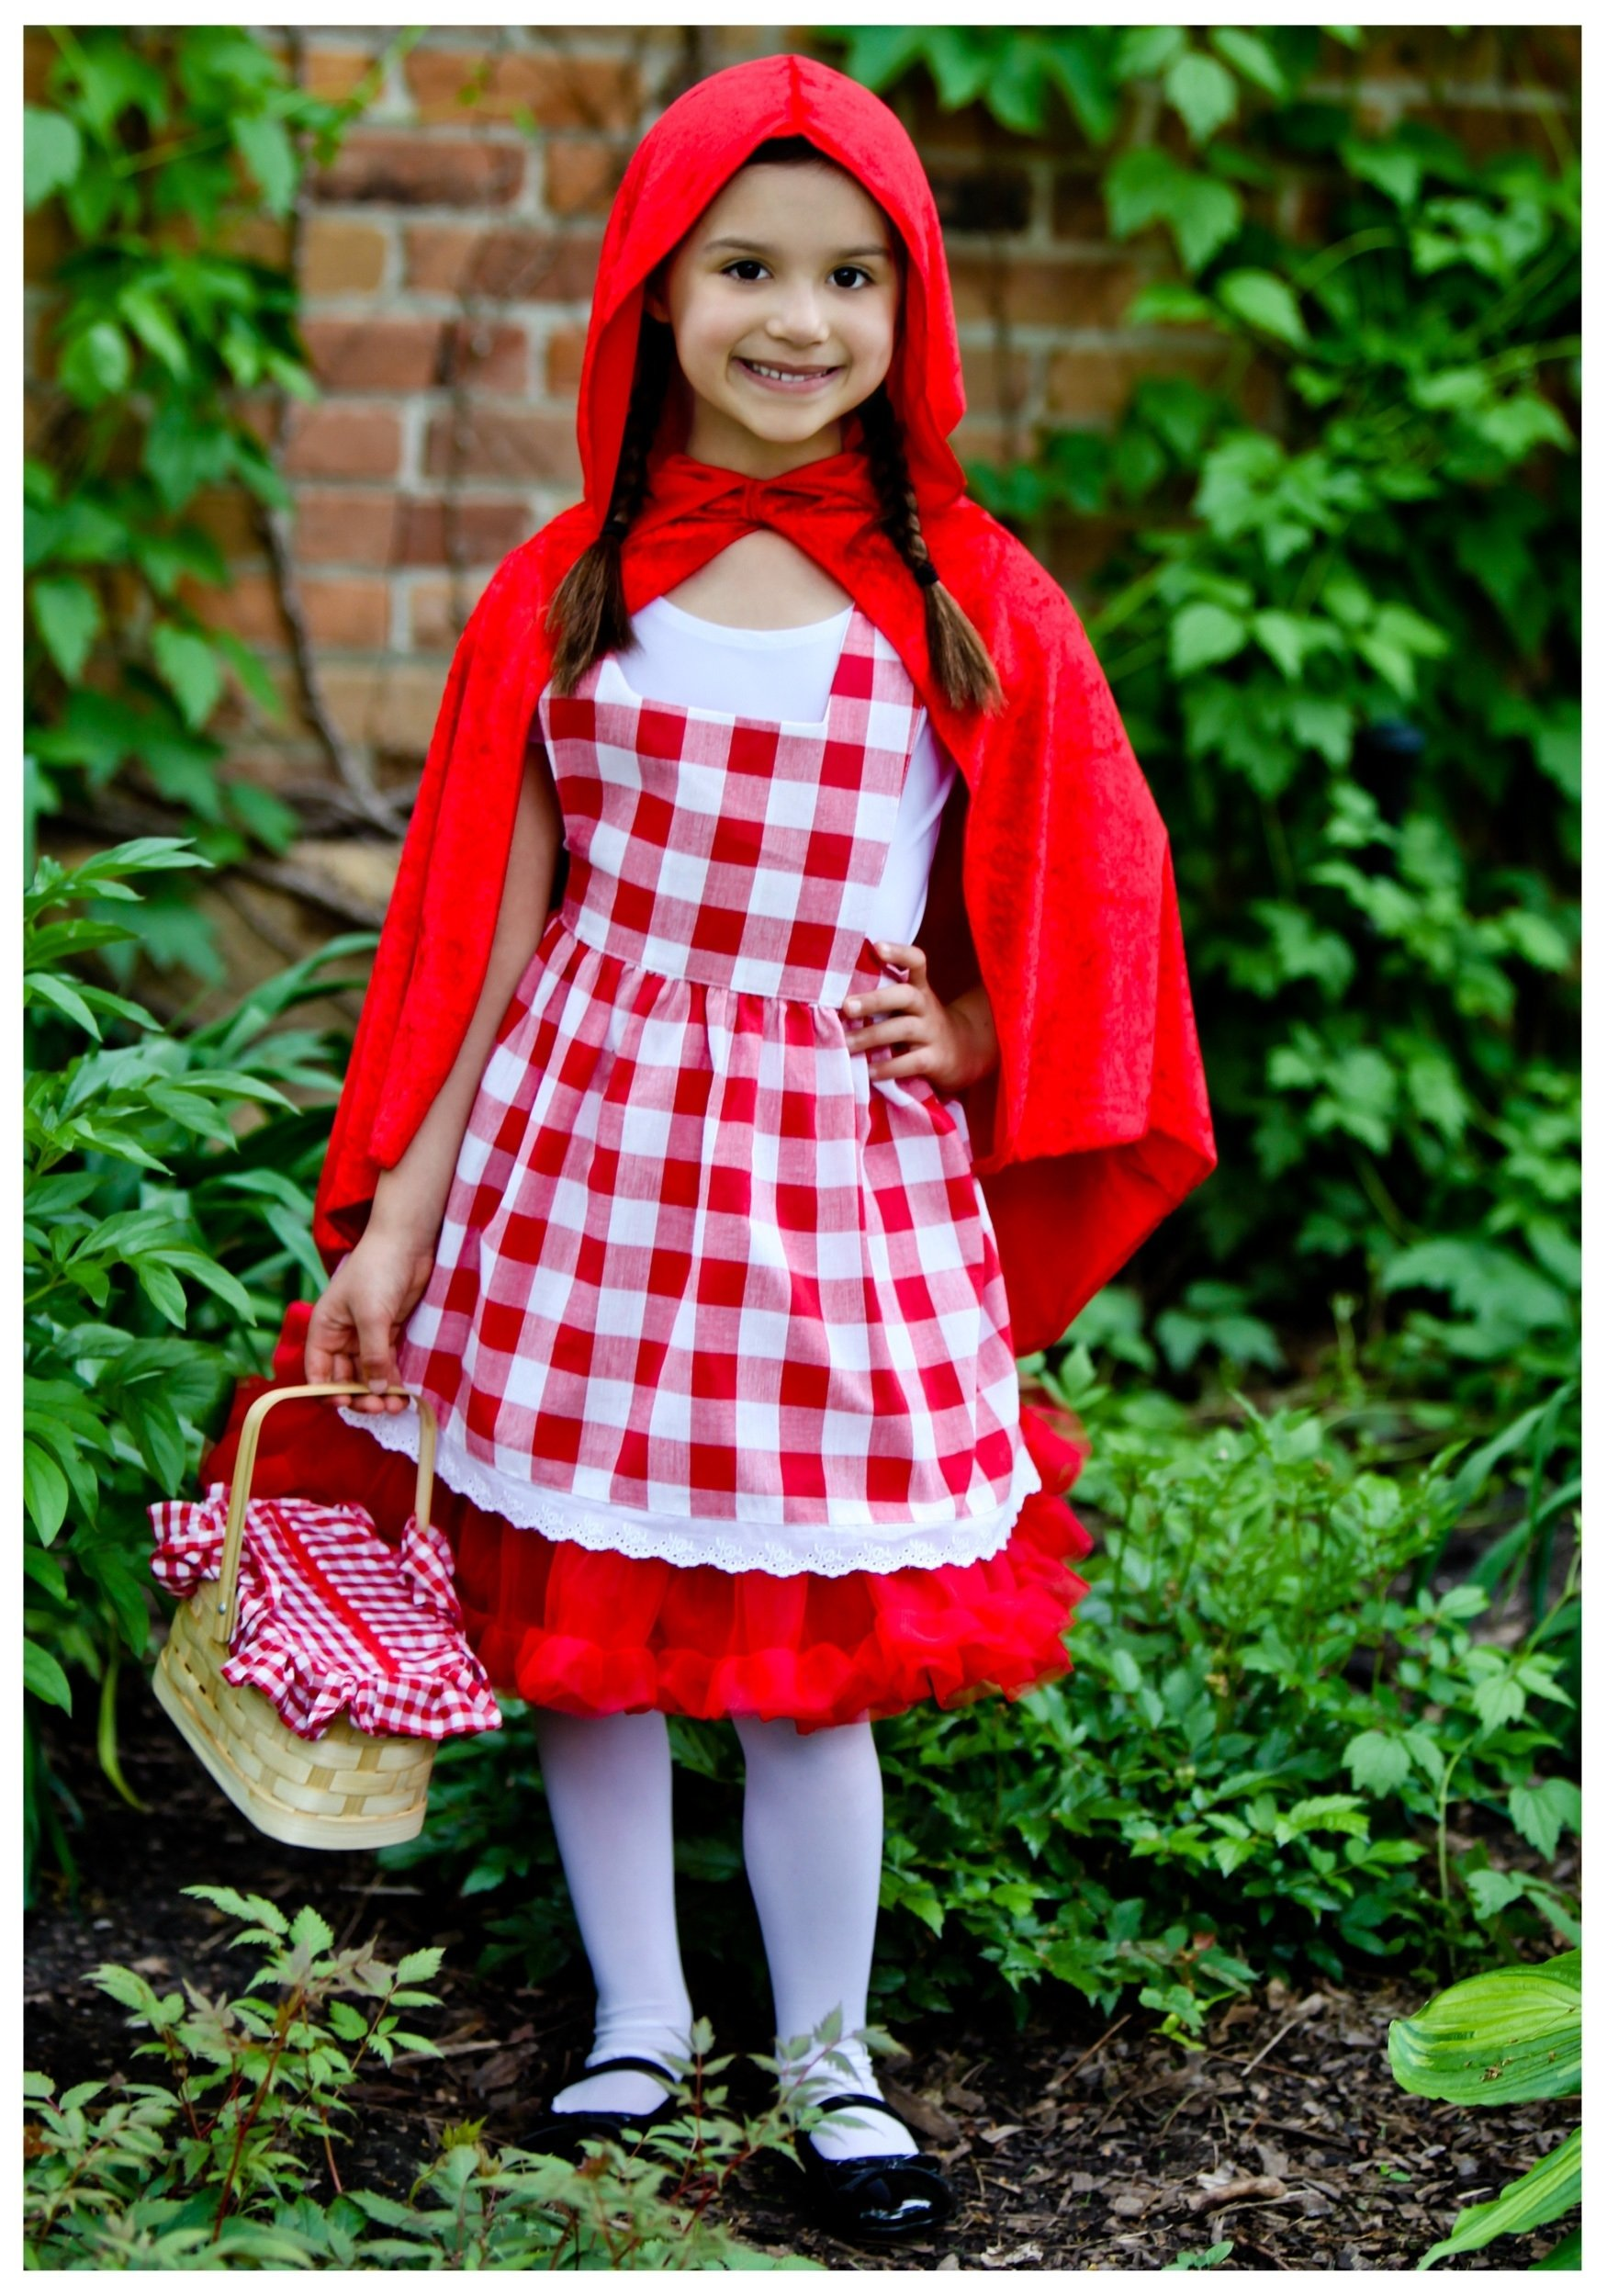 10 Trendy Red Riding Hood Costume Ideas red riding hood tutu kids costume child red riding hood costume ideas 2020